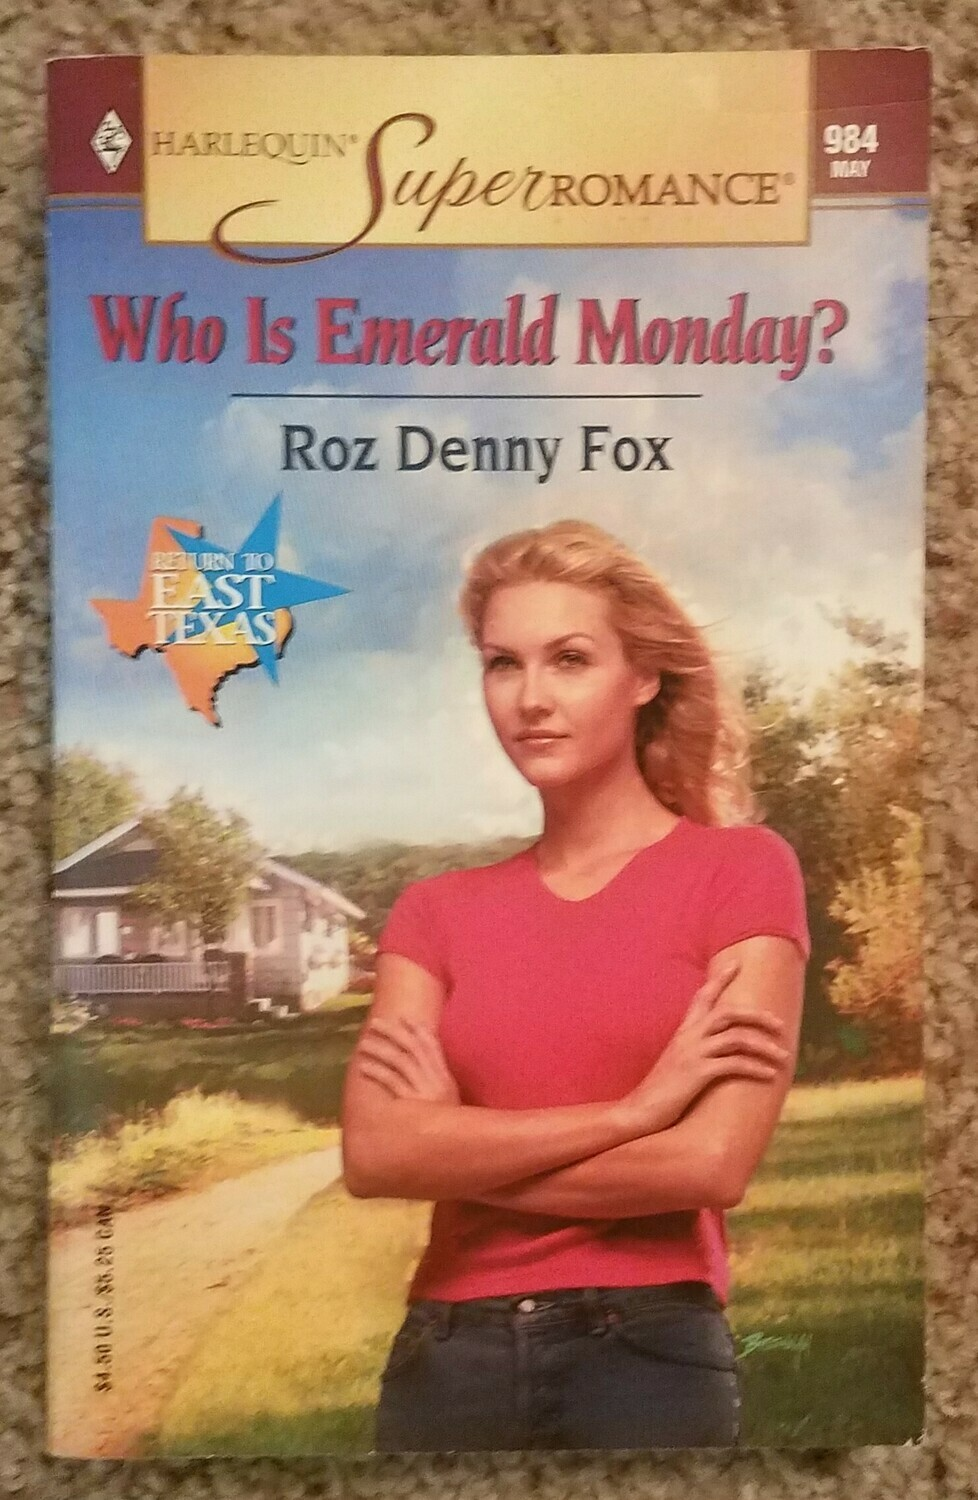 Who is Emerald Monday? by Roz Denny Fox